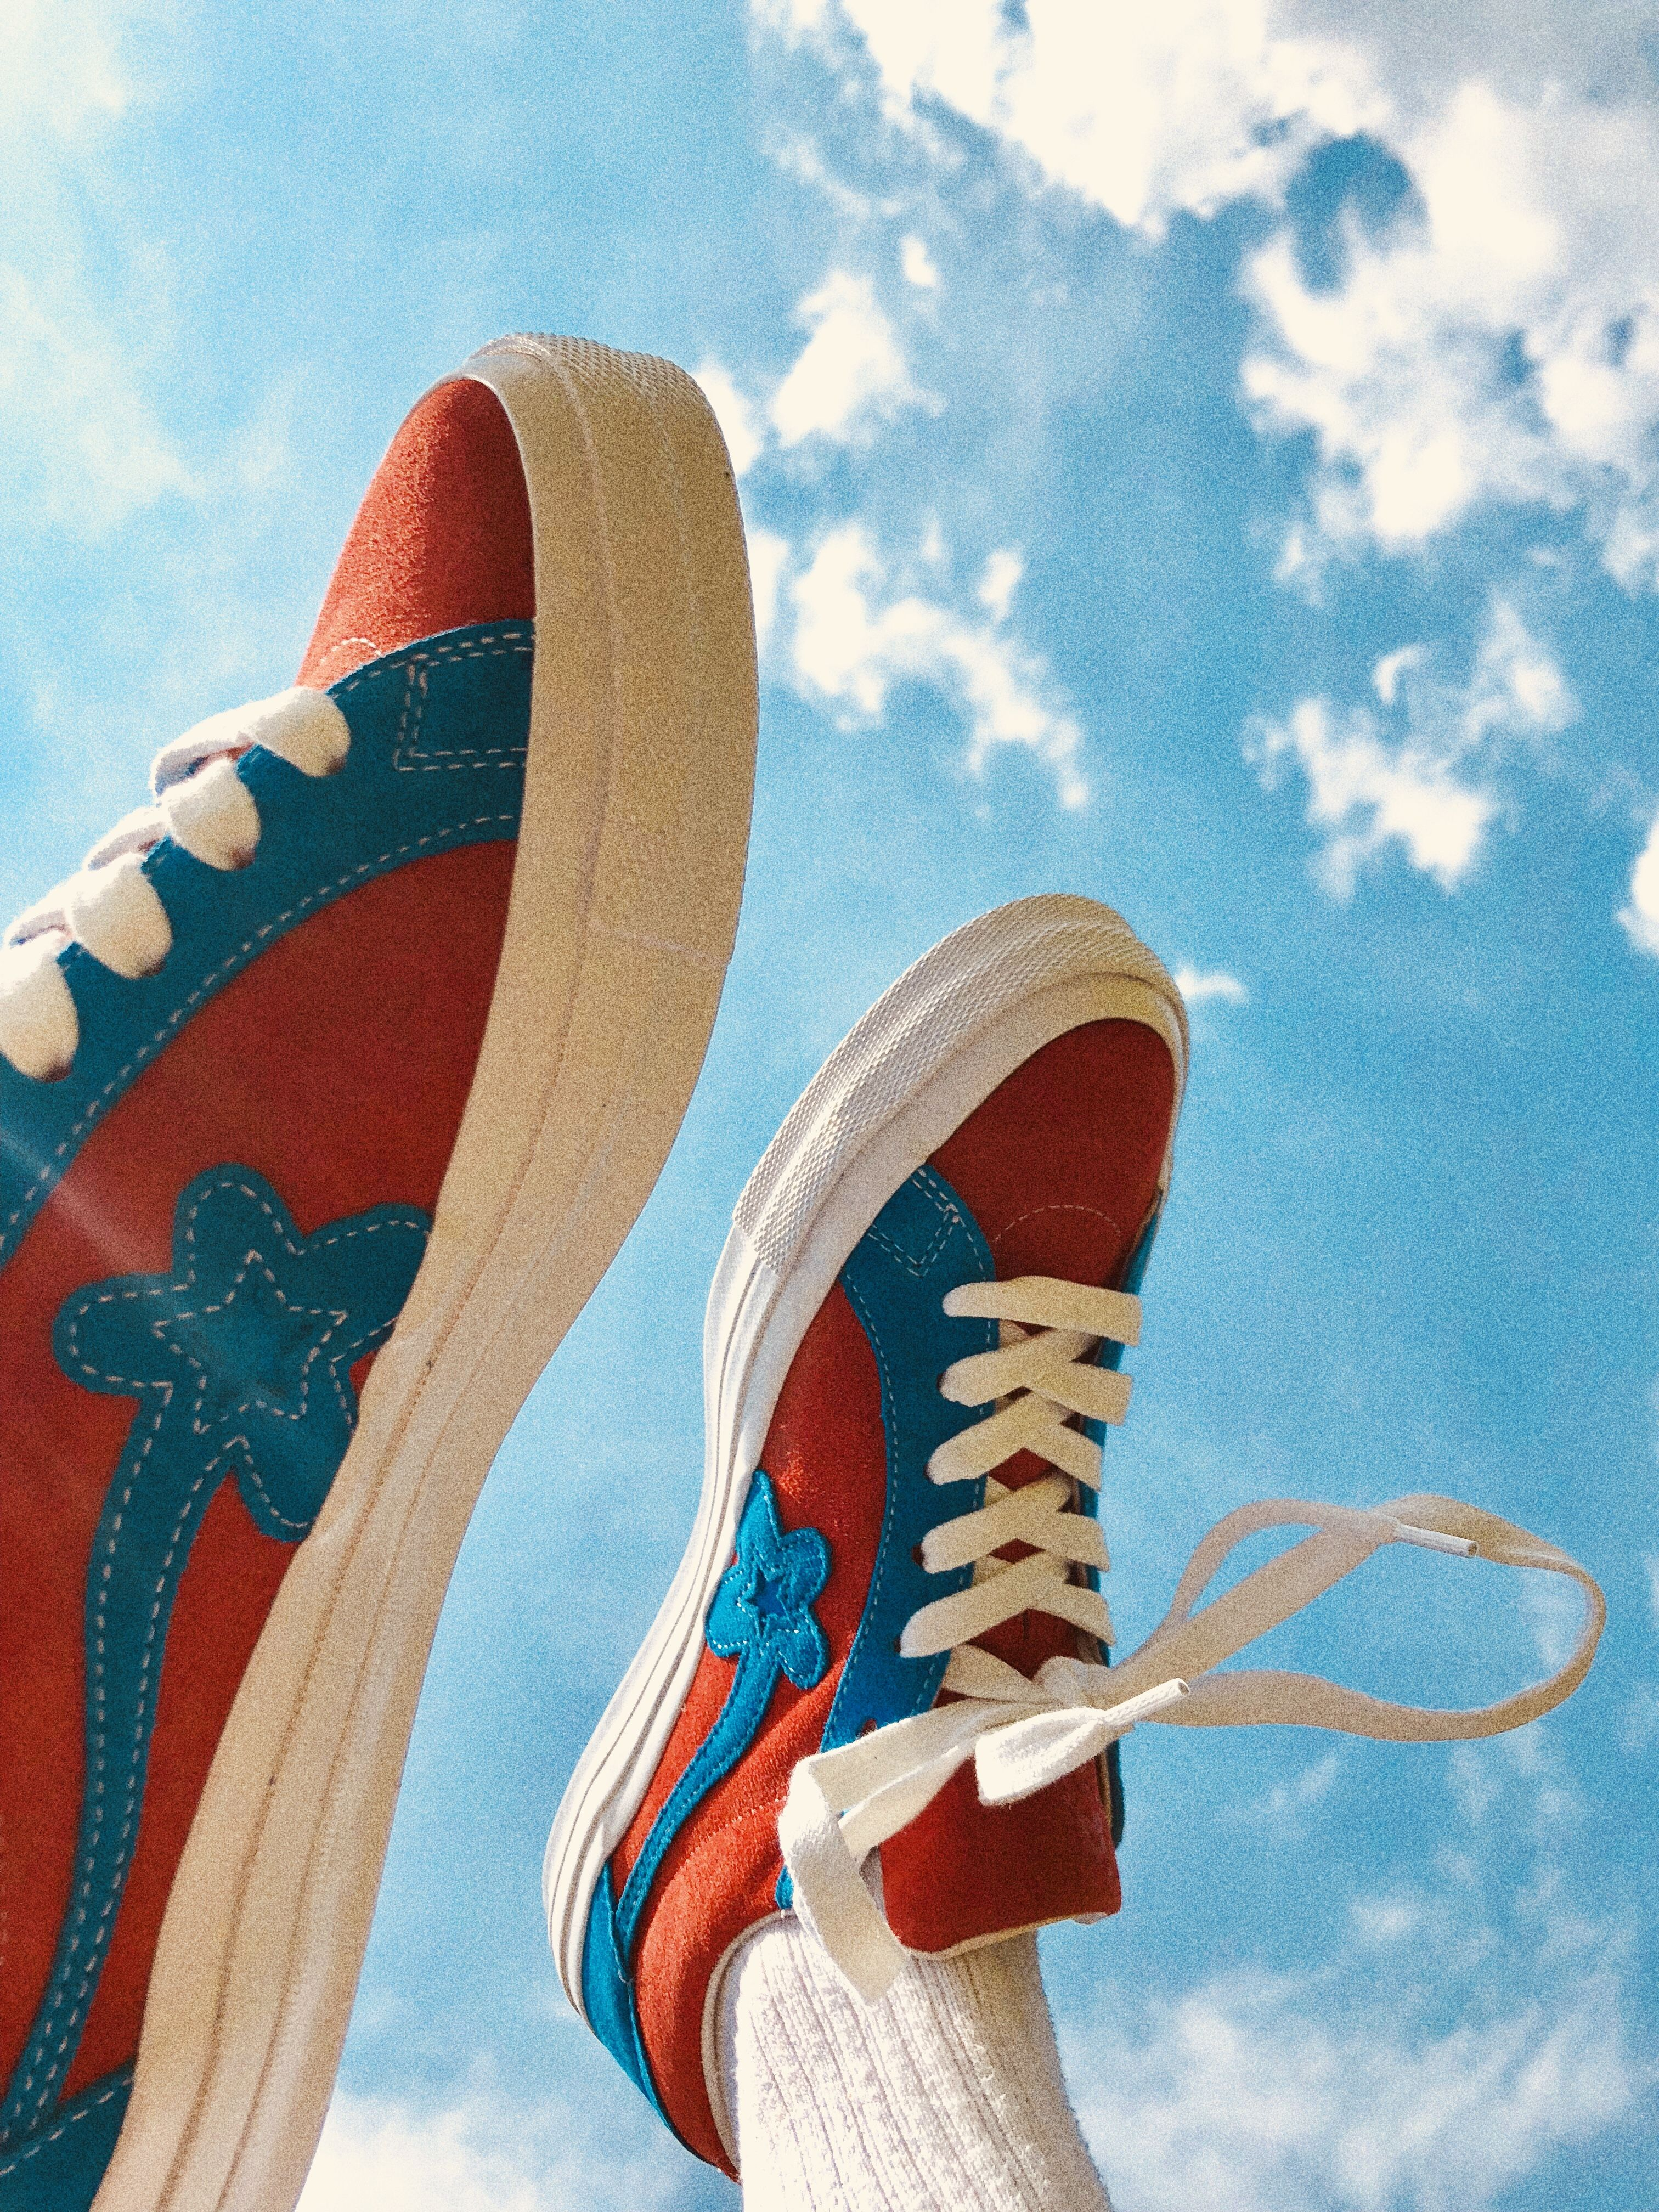 Blue And Red Golf Le Fleur Clothing Shoes Sneakers Footwear